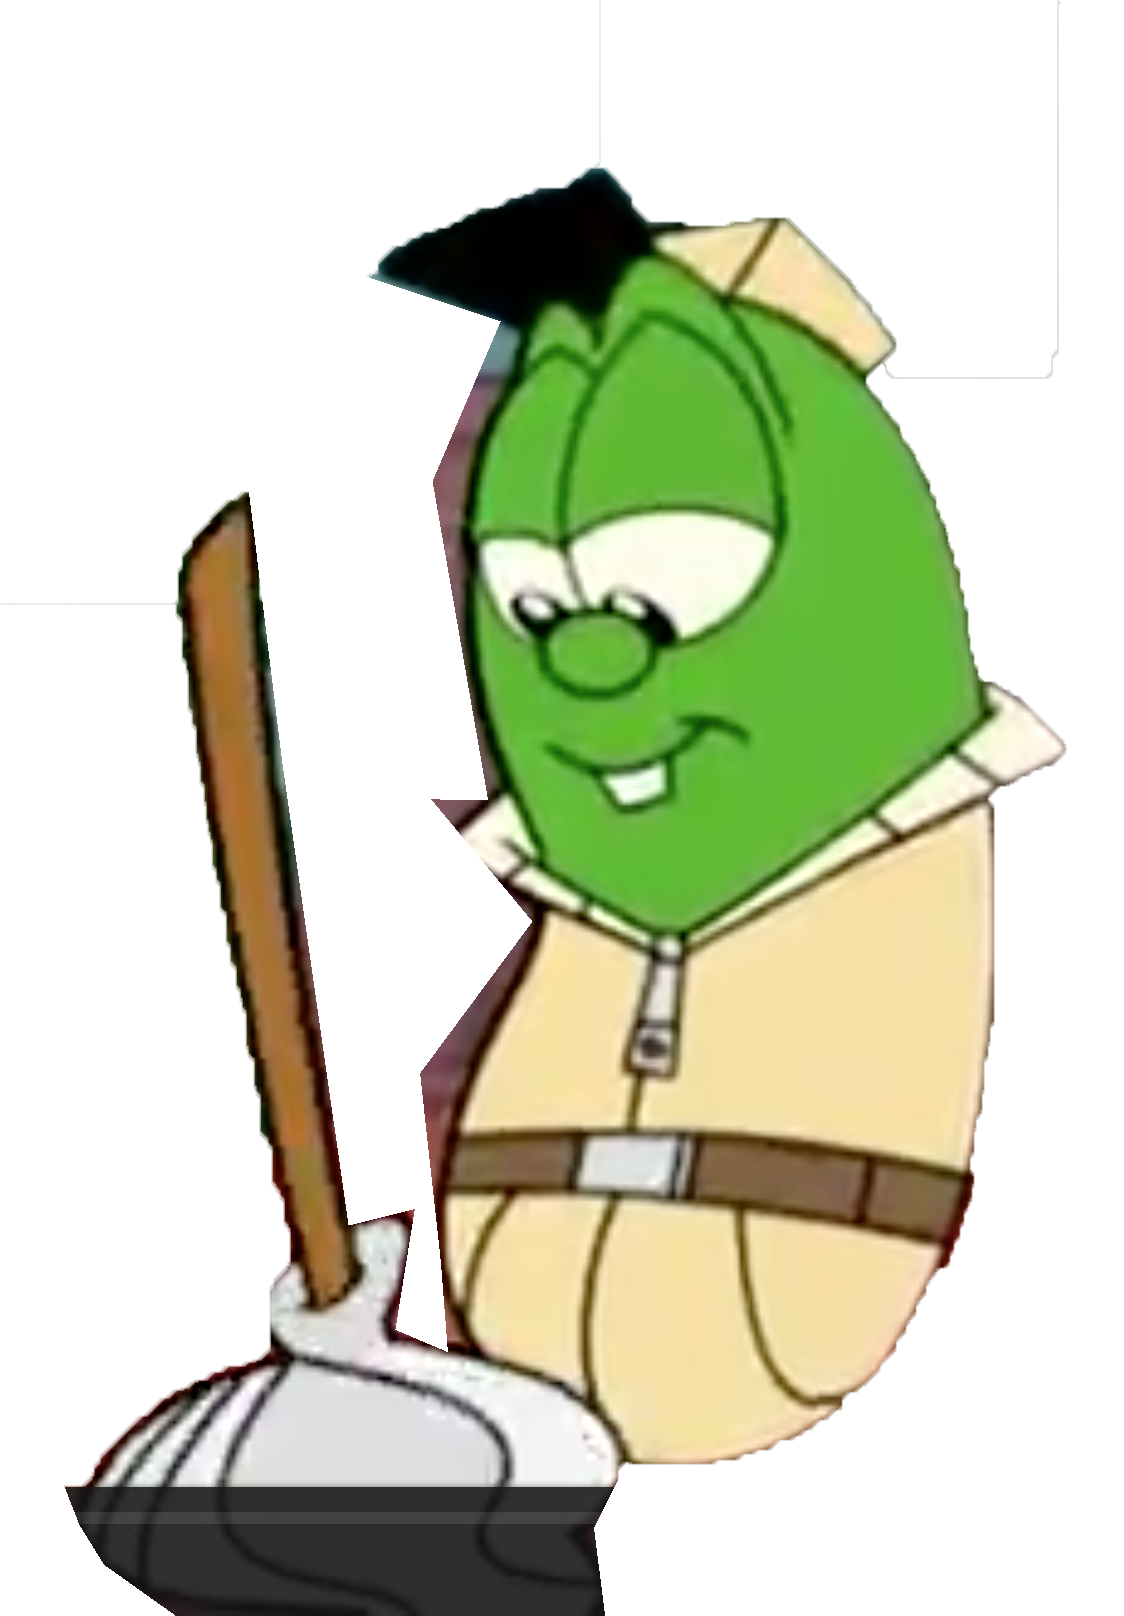 Male clipart janitor. Image animated larry as